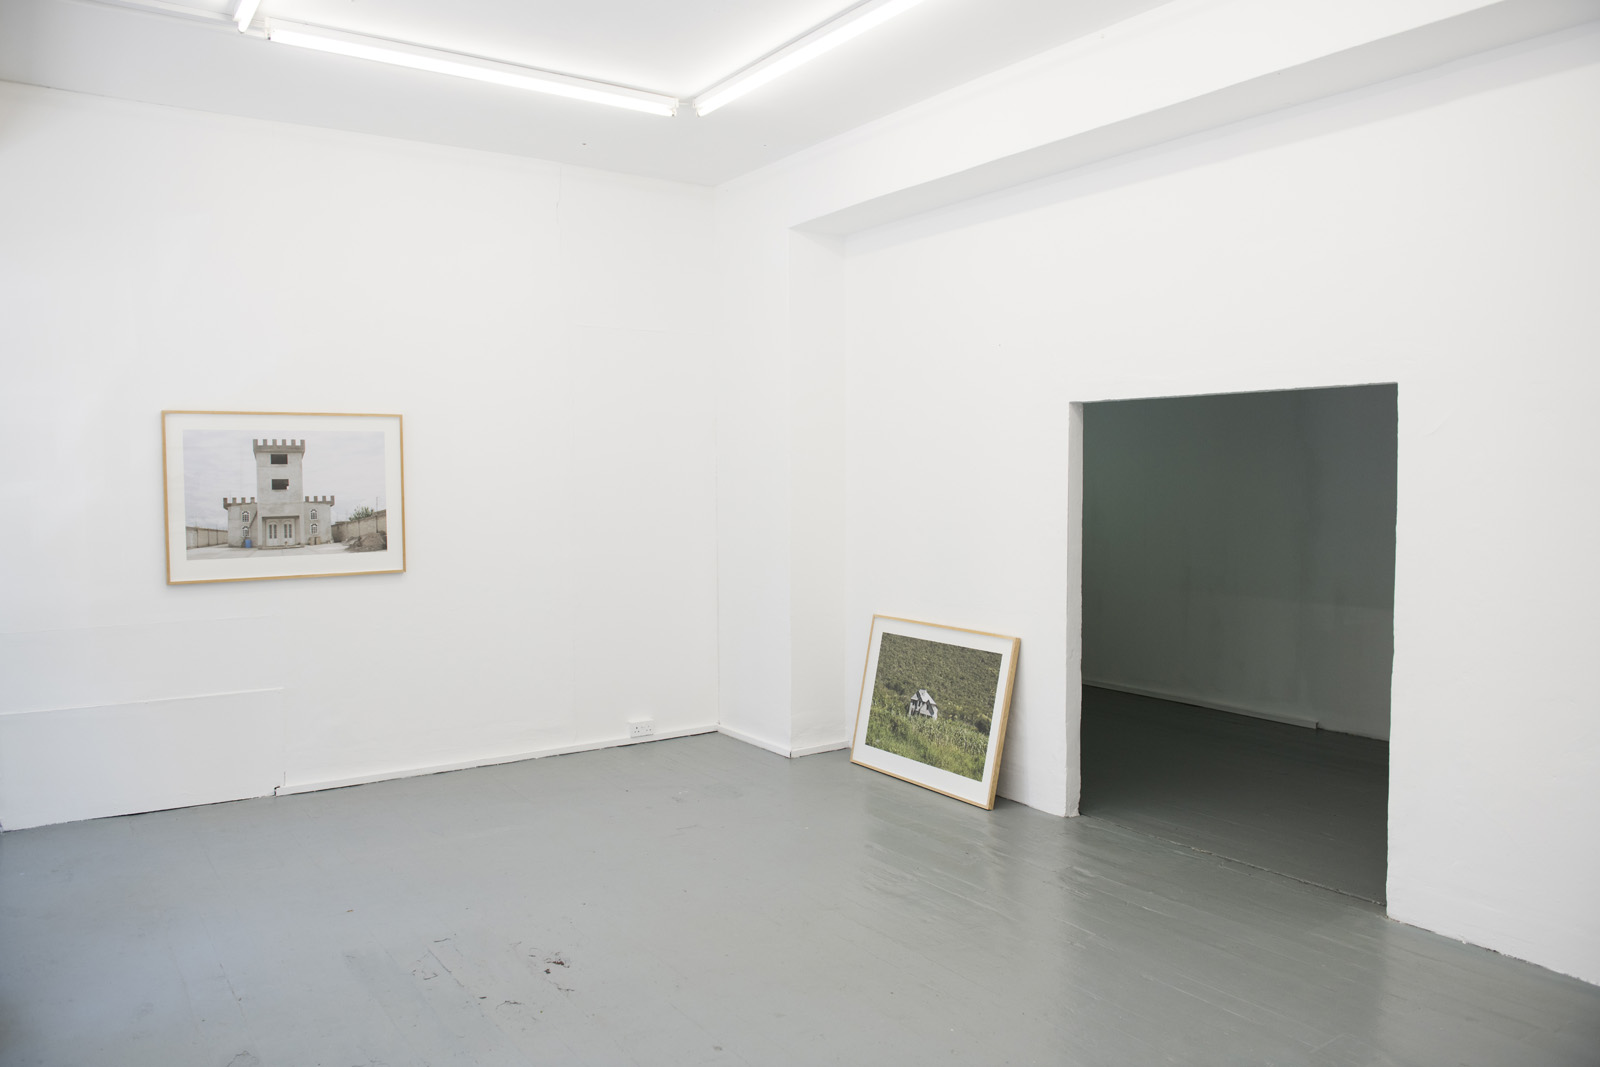 Free Architecture at the Chalton Gallery, London, England, Great Britain